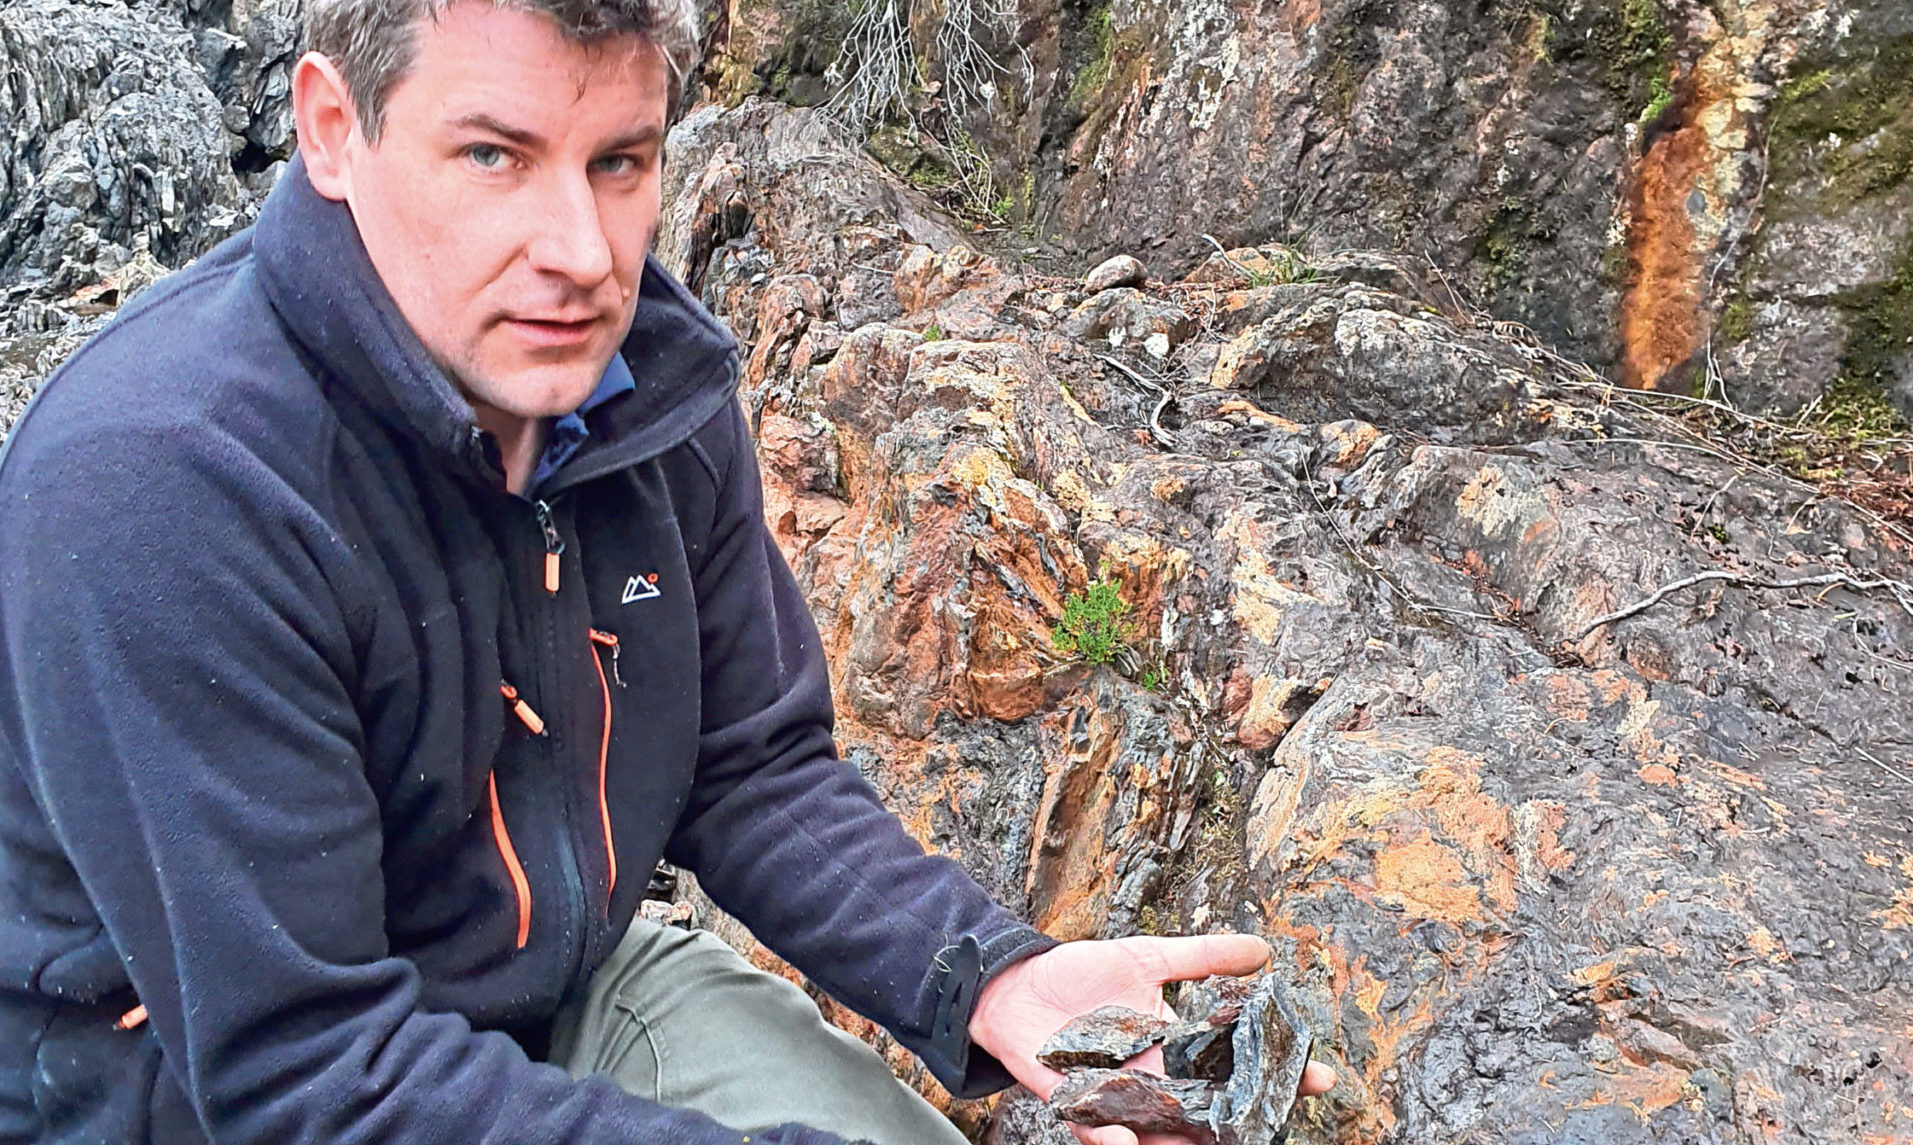 Gavin Berkenheger, managing director of GreenOre Gold, taking rock samples